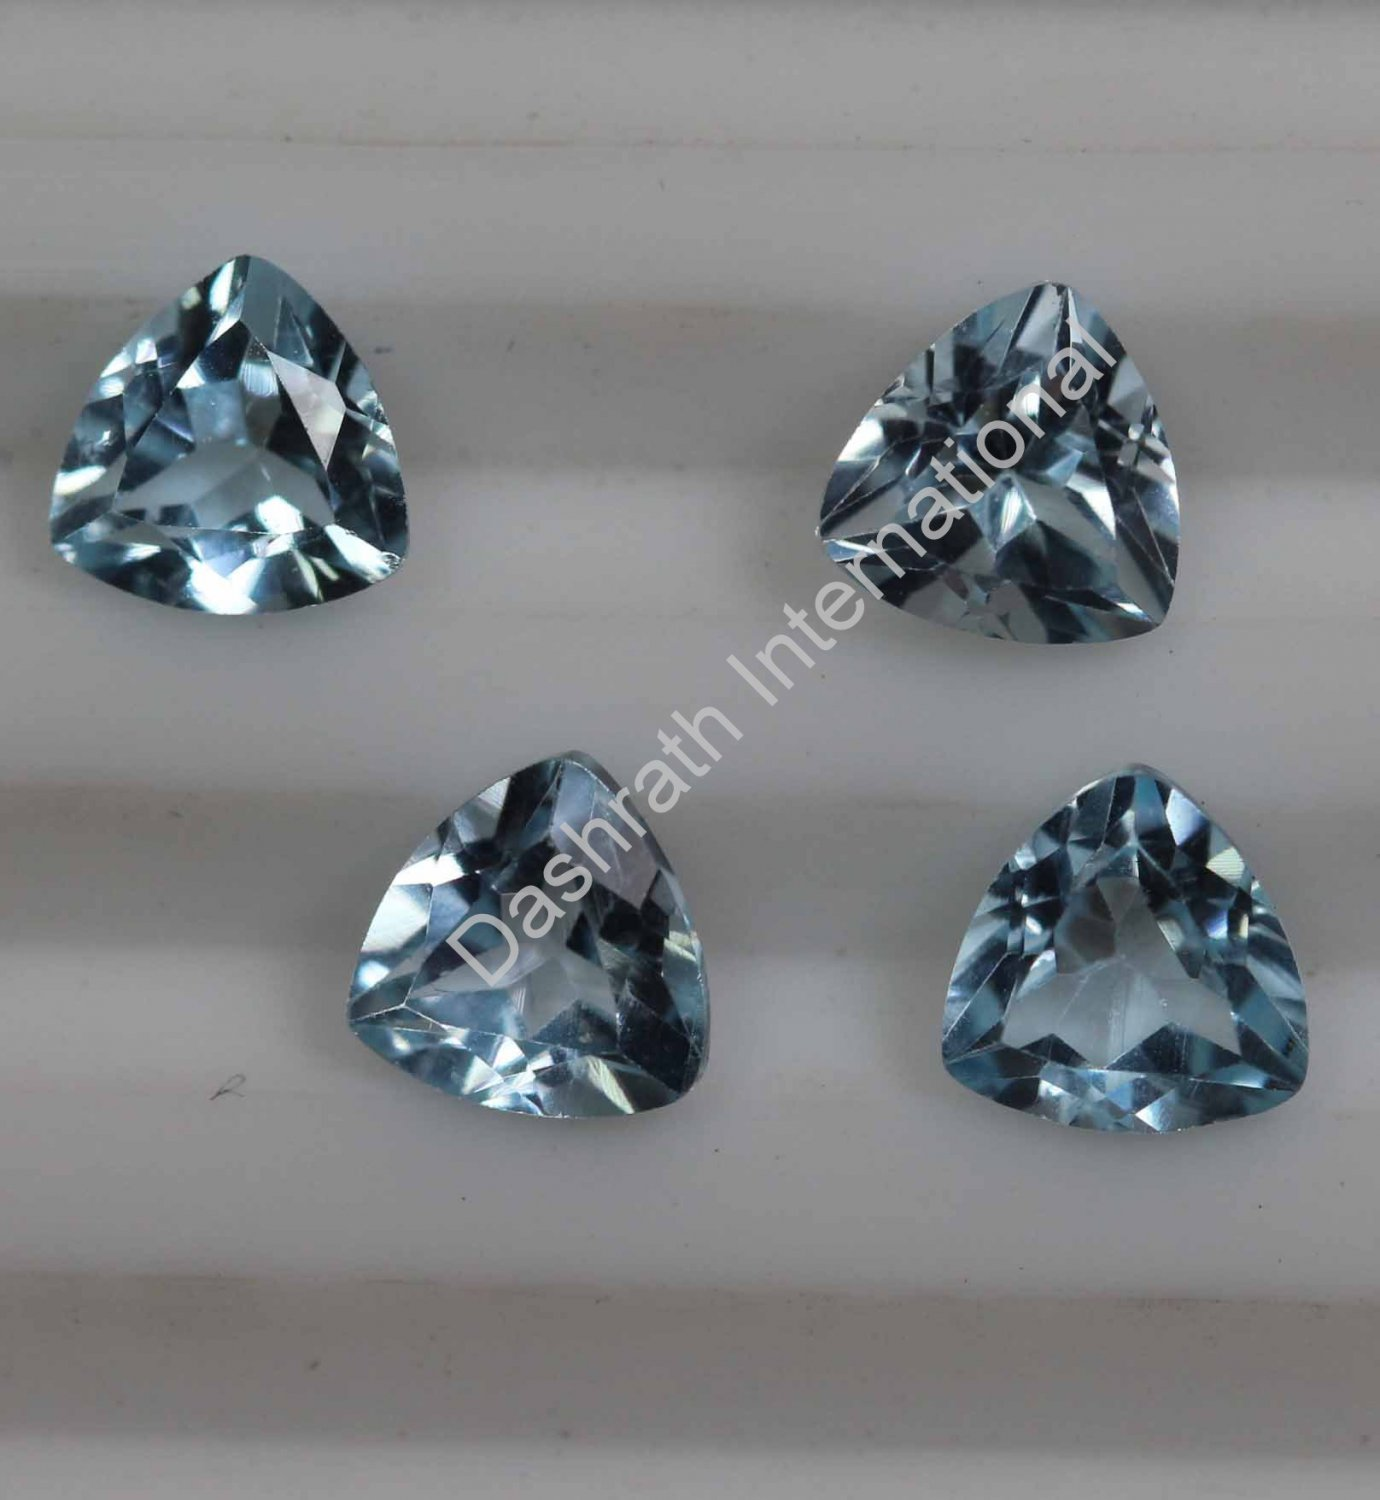 6mm Natural Sky Blue Topaz Faceted Cut Trillion 10 Pieces Lot Top Quality Loose Gemstone